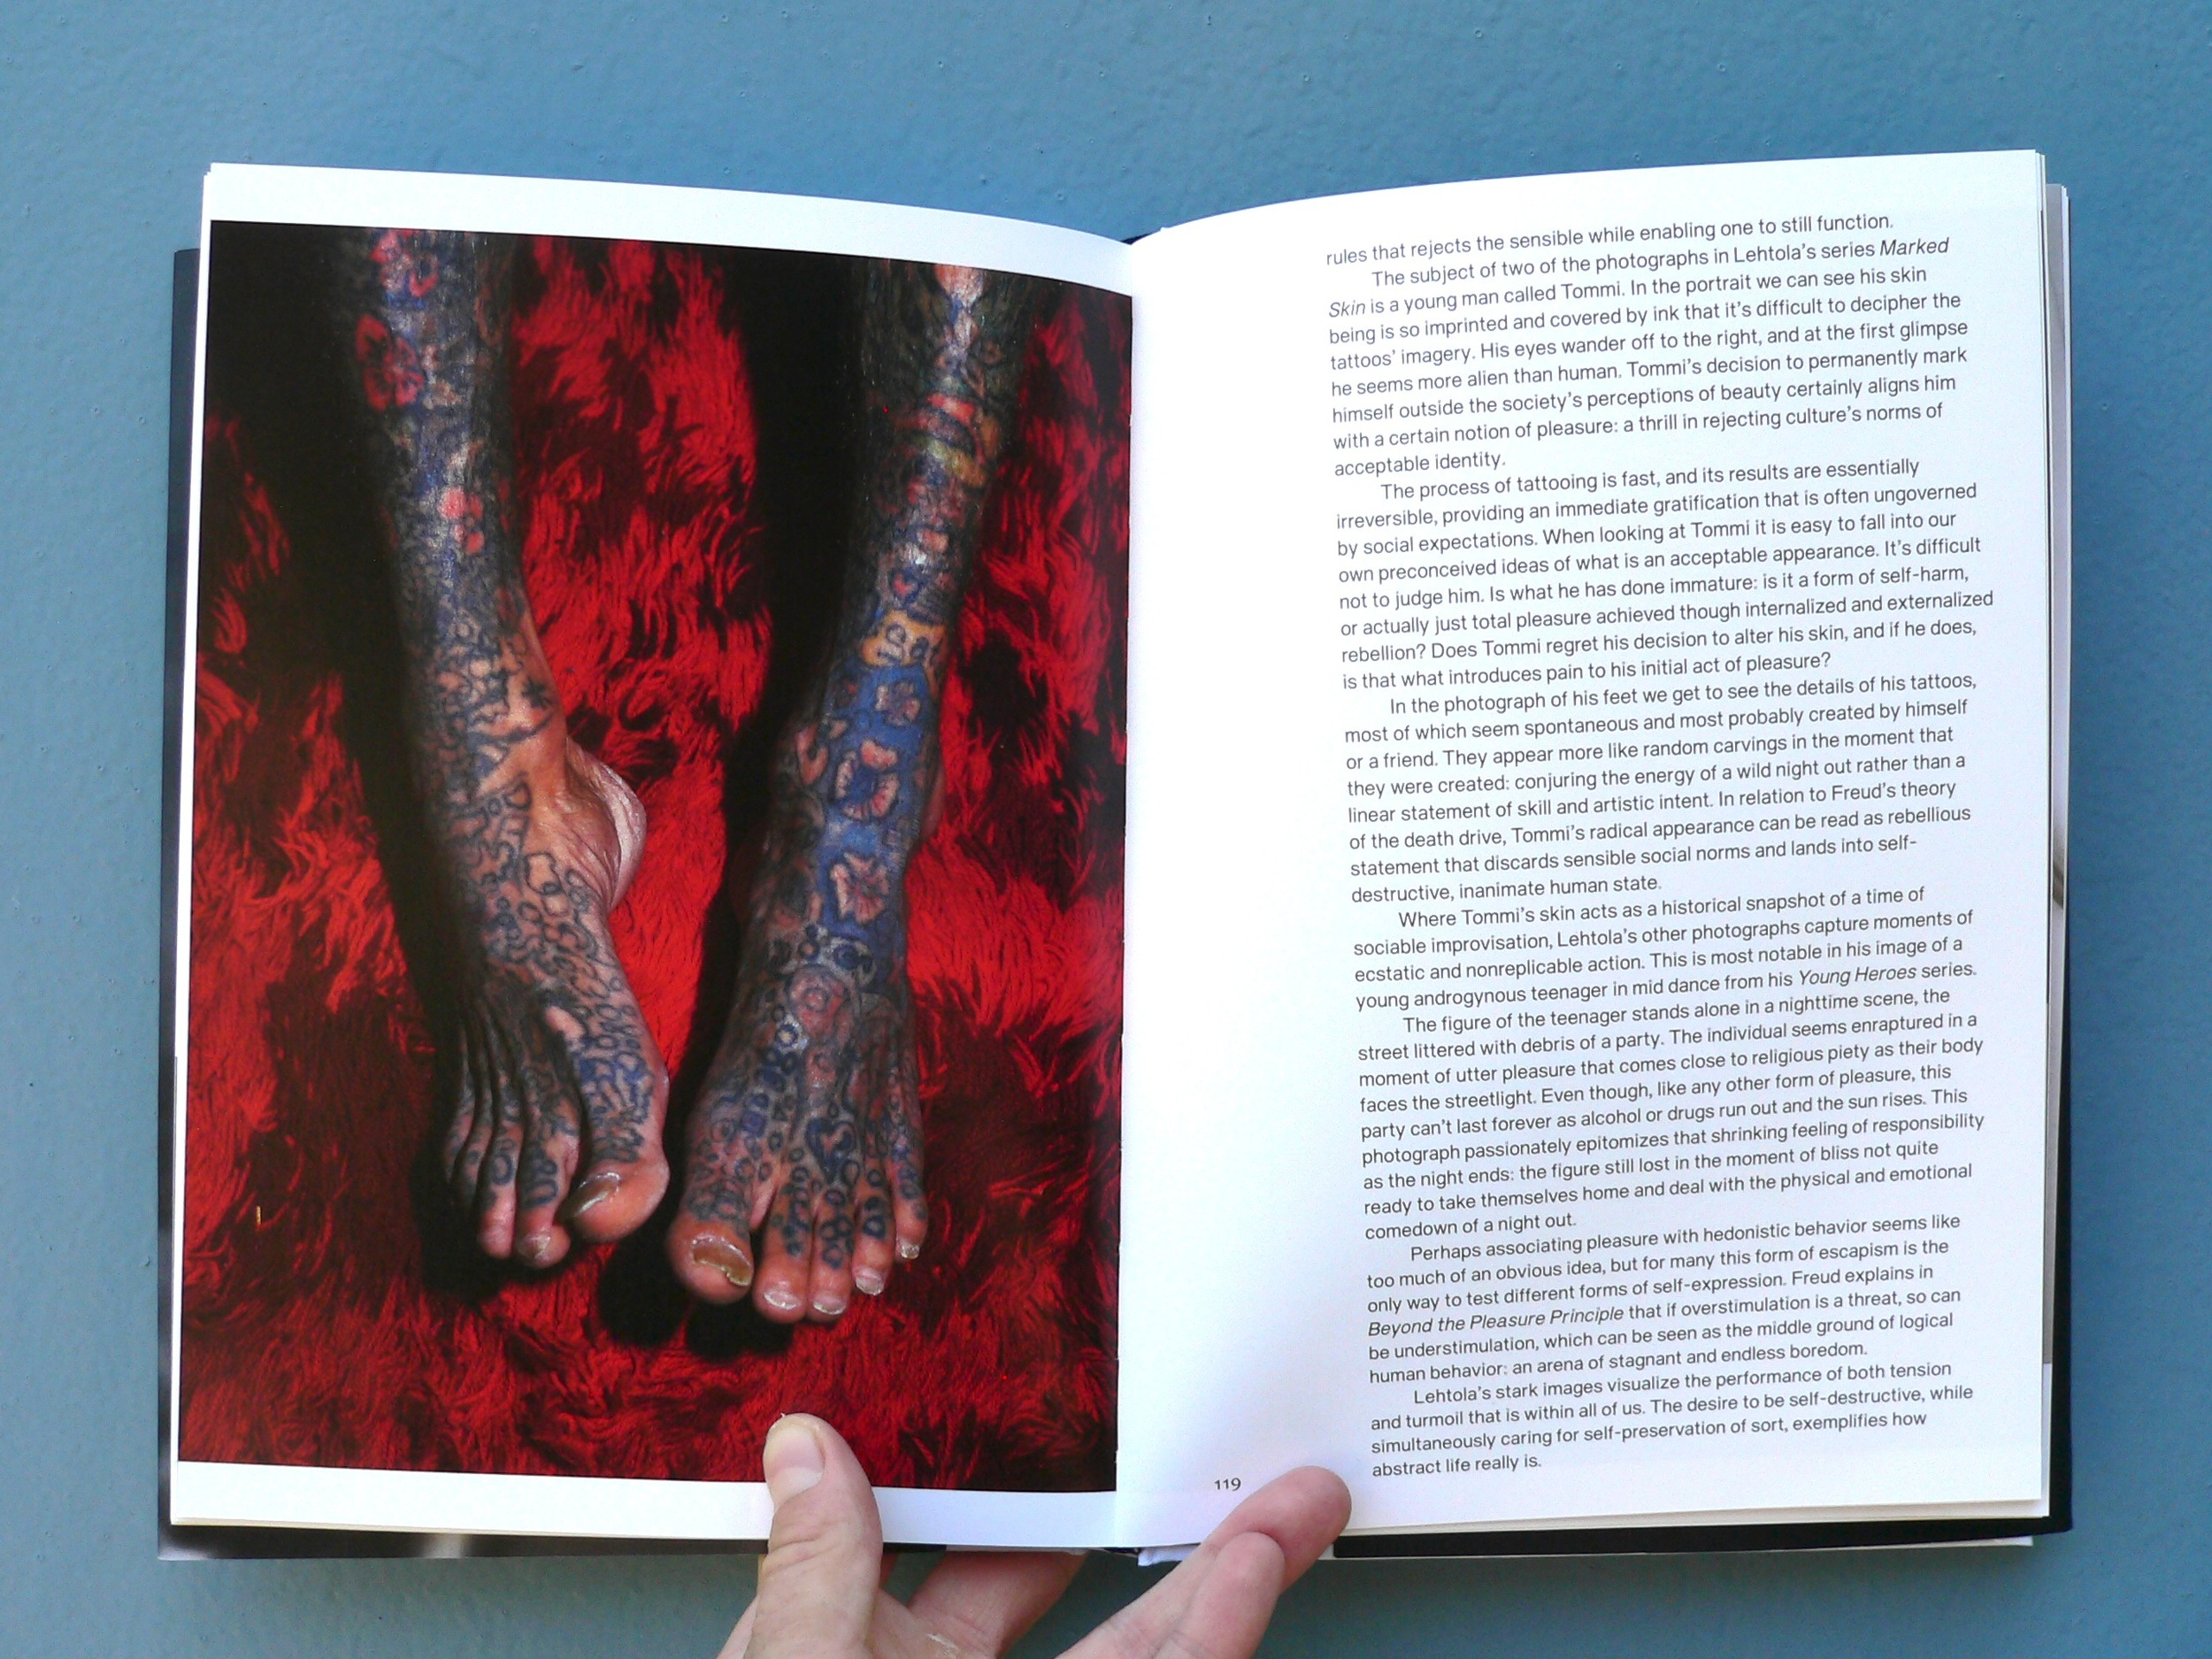 Left page:Jouko Lehtola,  Tommi , 1999, from the series  Marked Skin . Courtesy Jouko Lehtola Foundation. Right page: excerpt from Reba Maybury's article  The Tension and Turmoil of Jouko Lehtola , 2016. Courtesy the writer.Beyond the Pleasure Principle publication by FCINY.